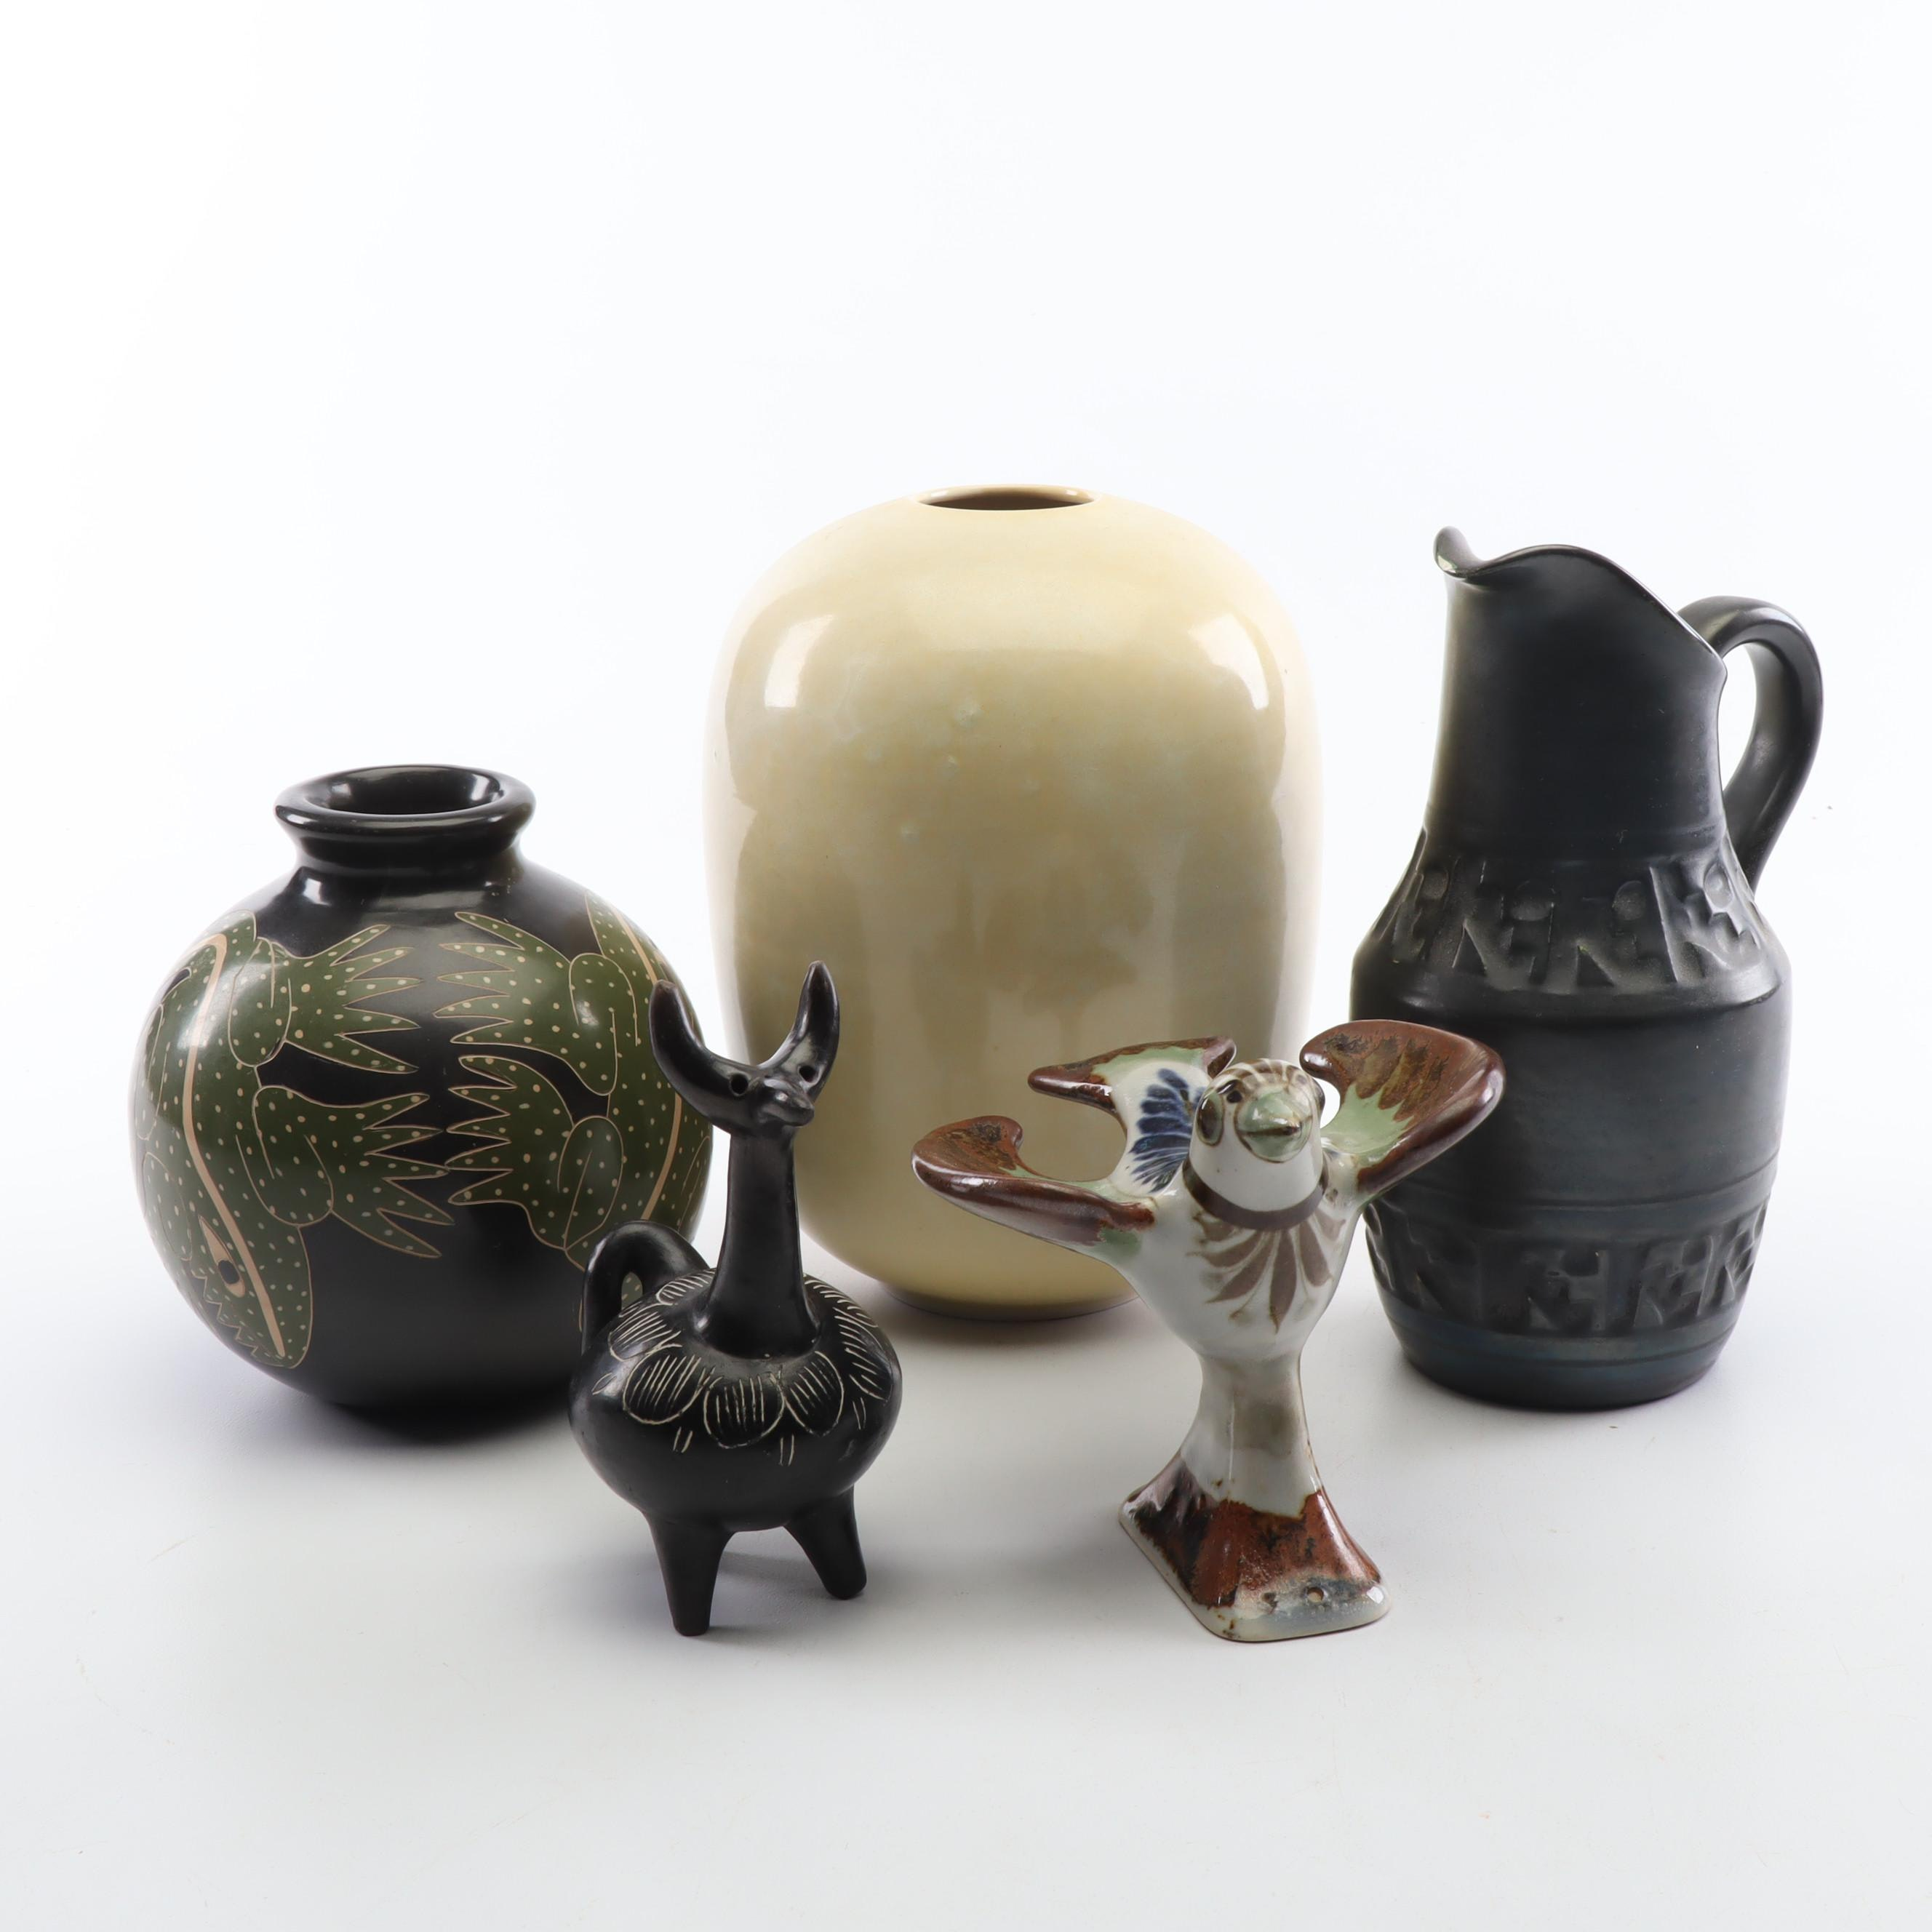 South American and Mexican Pottery Decor by Juan Paulino Martinez and More